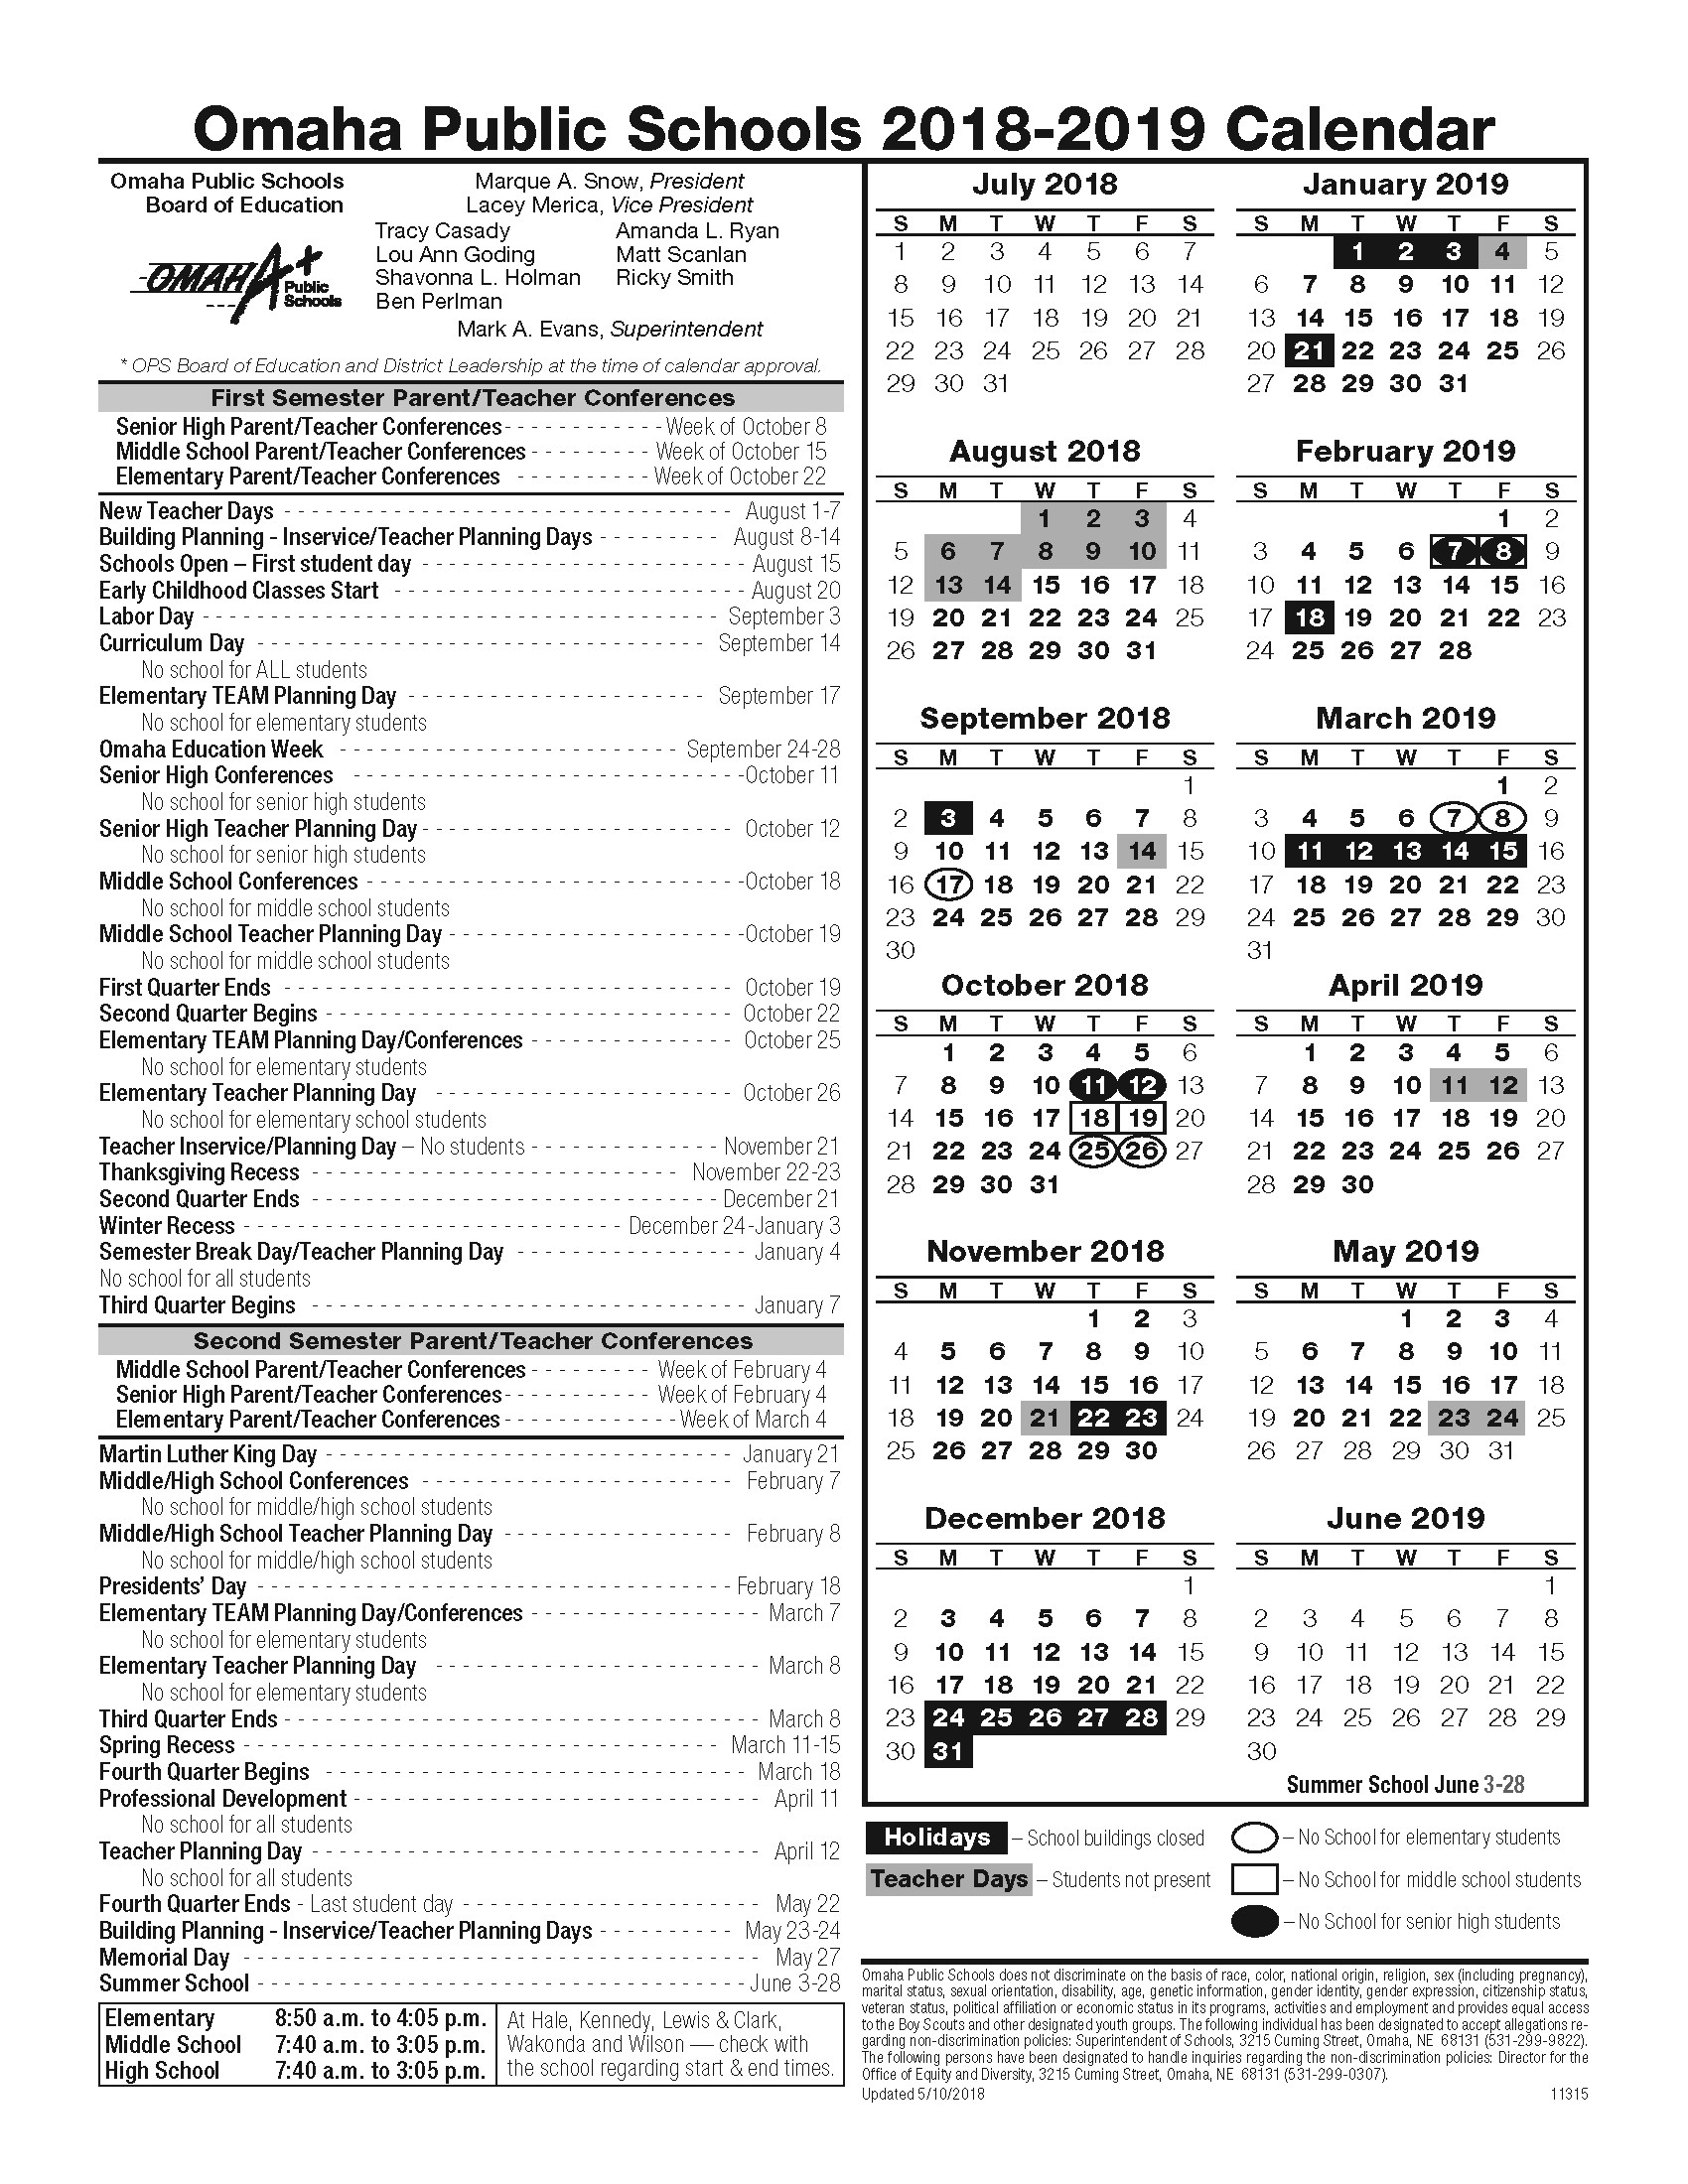 Calendario Escolar 2019 Kinder Recientes Updated 2018 19 Academic Calendar Omaha Public Schools Of Calendario Escolar 2019 Kinder Más Recientes District Calendar – District Calendar – Grandview C 4 School District